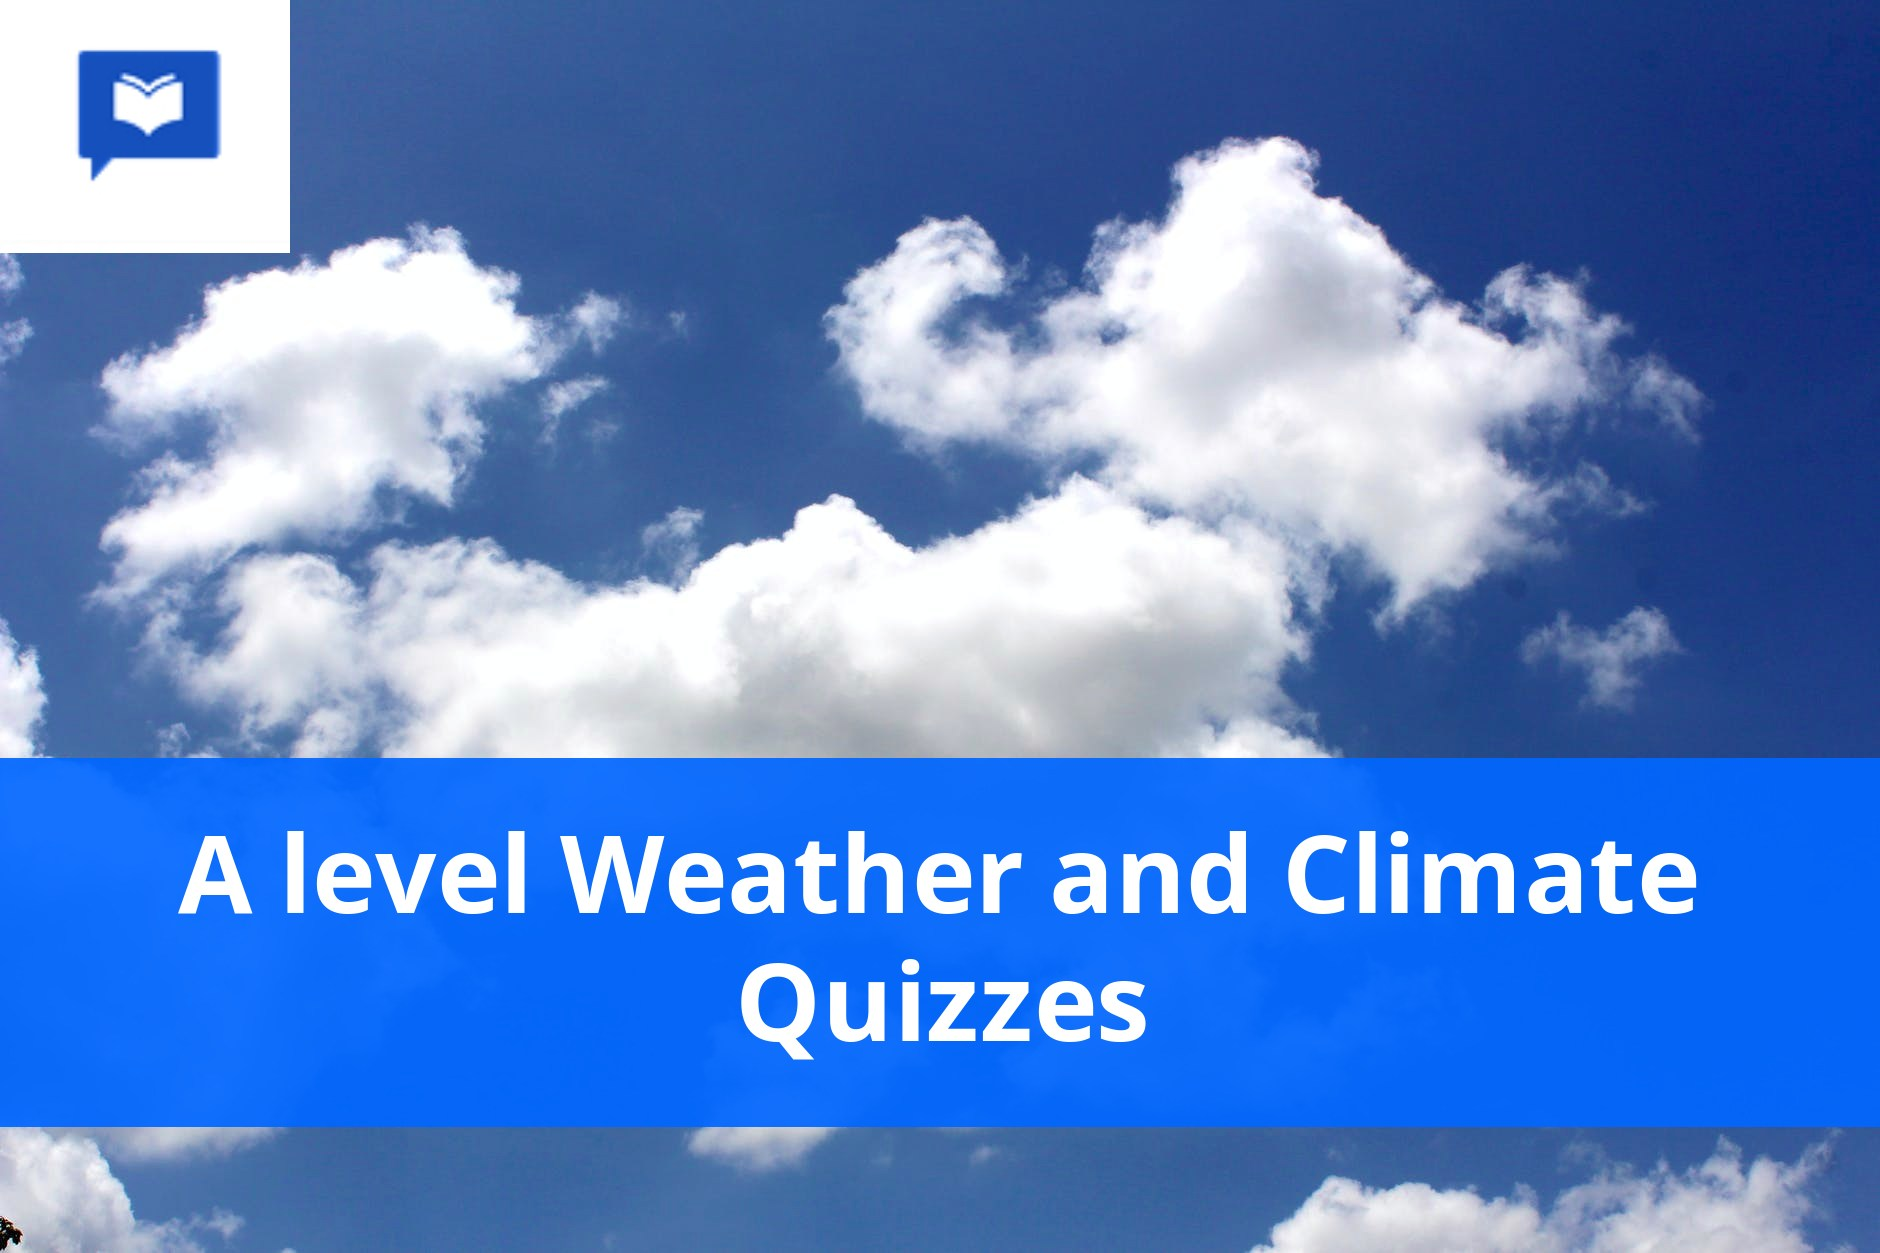 A level Weather and Climate Quizzes